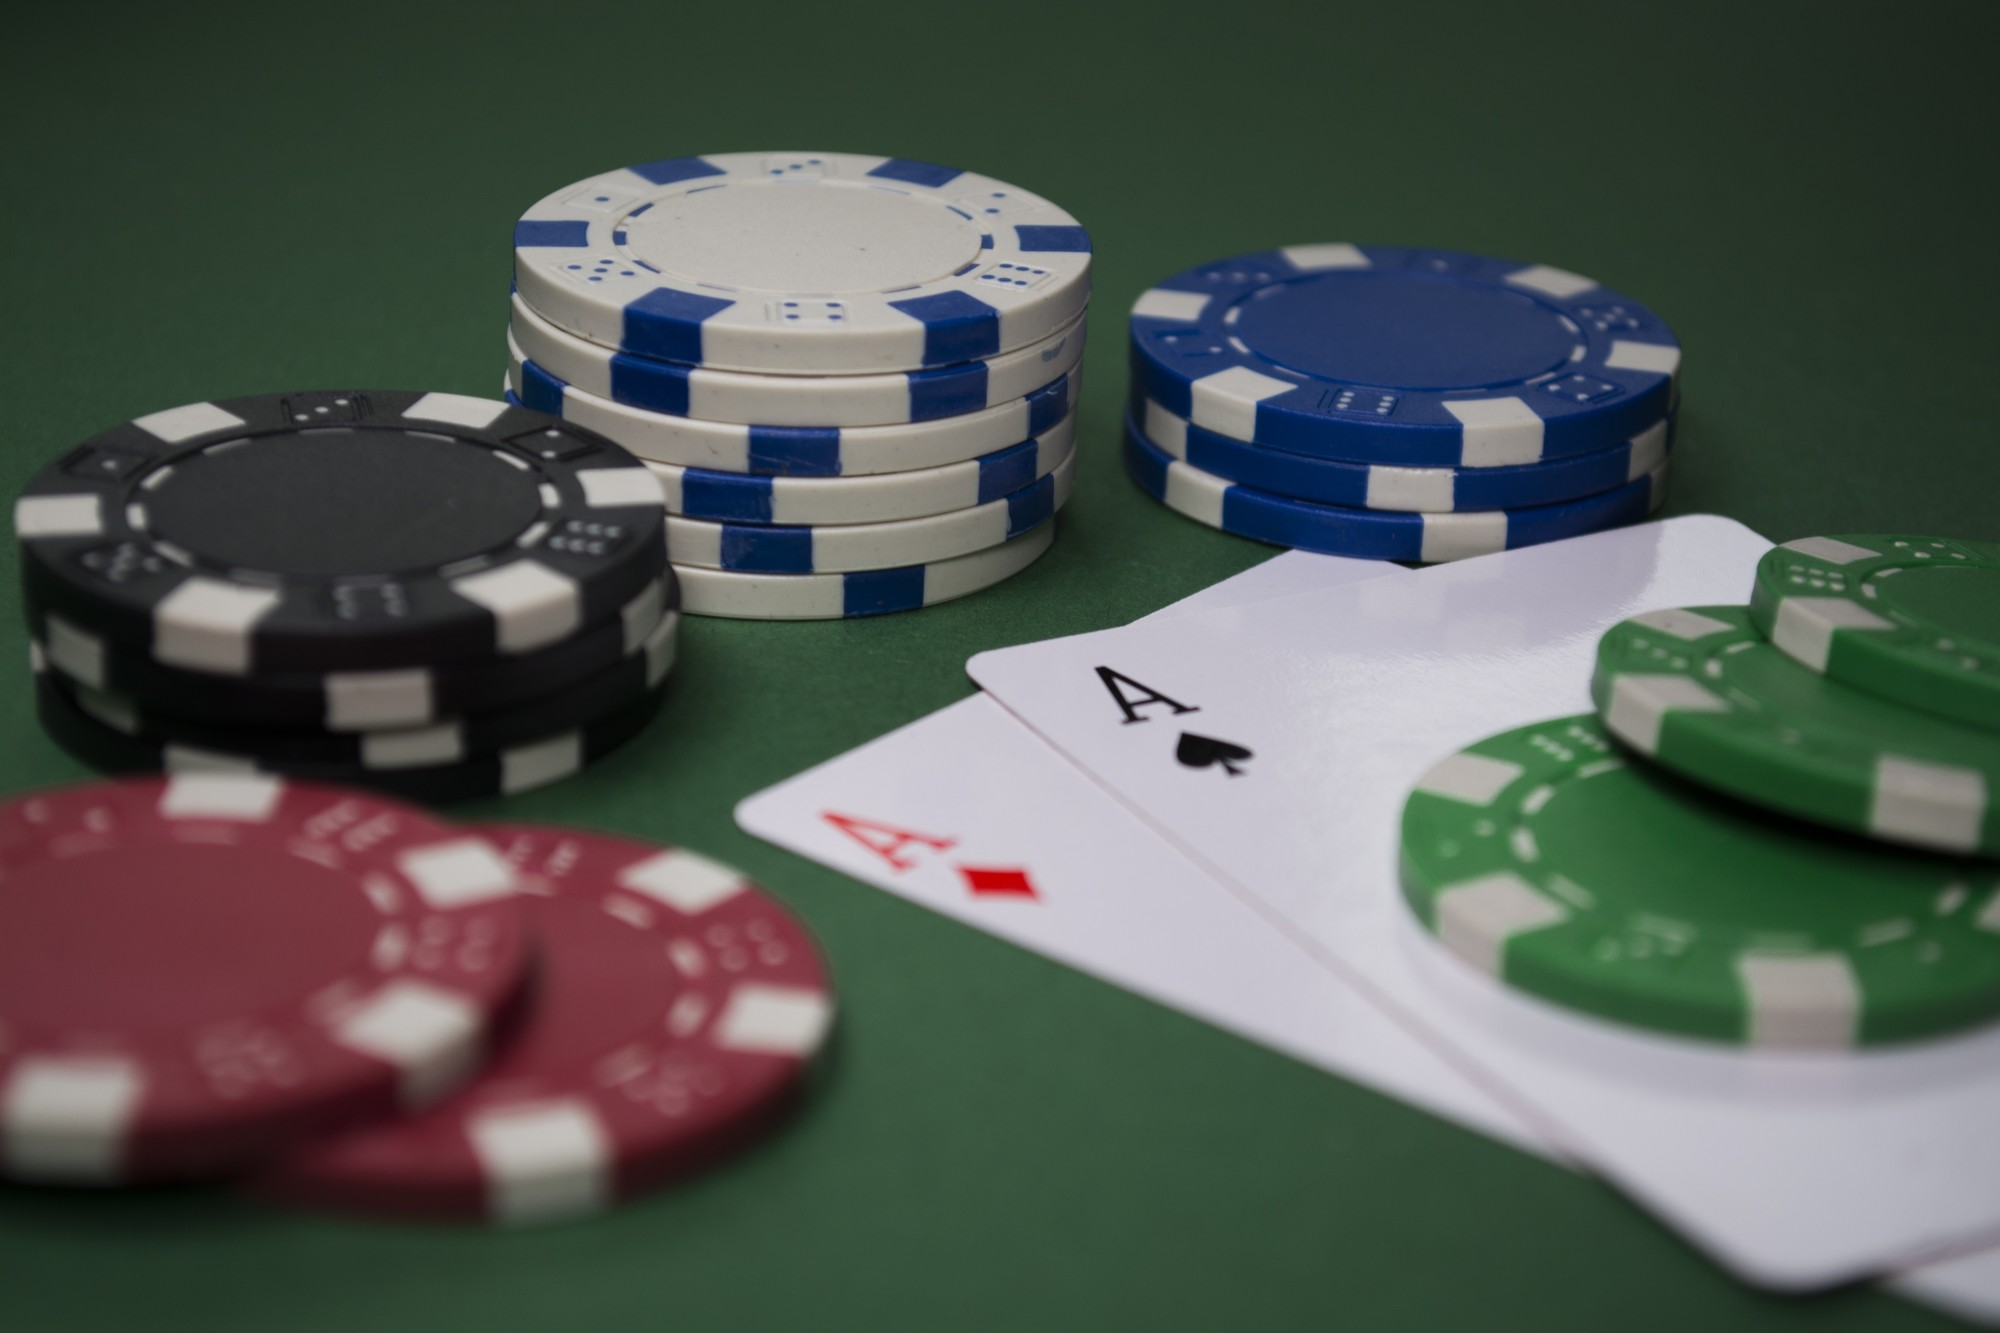 Free poker games offline to download